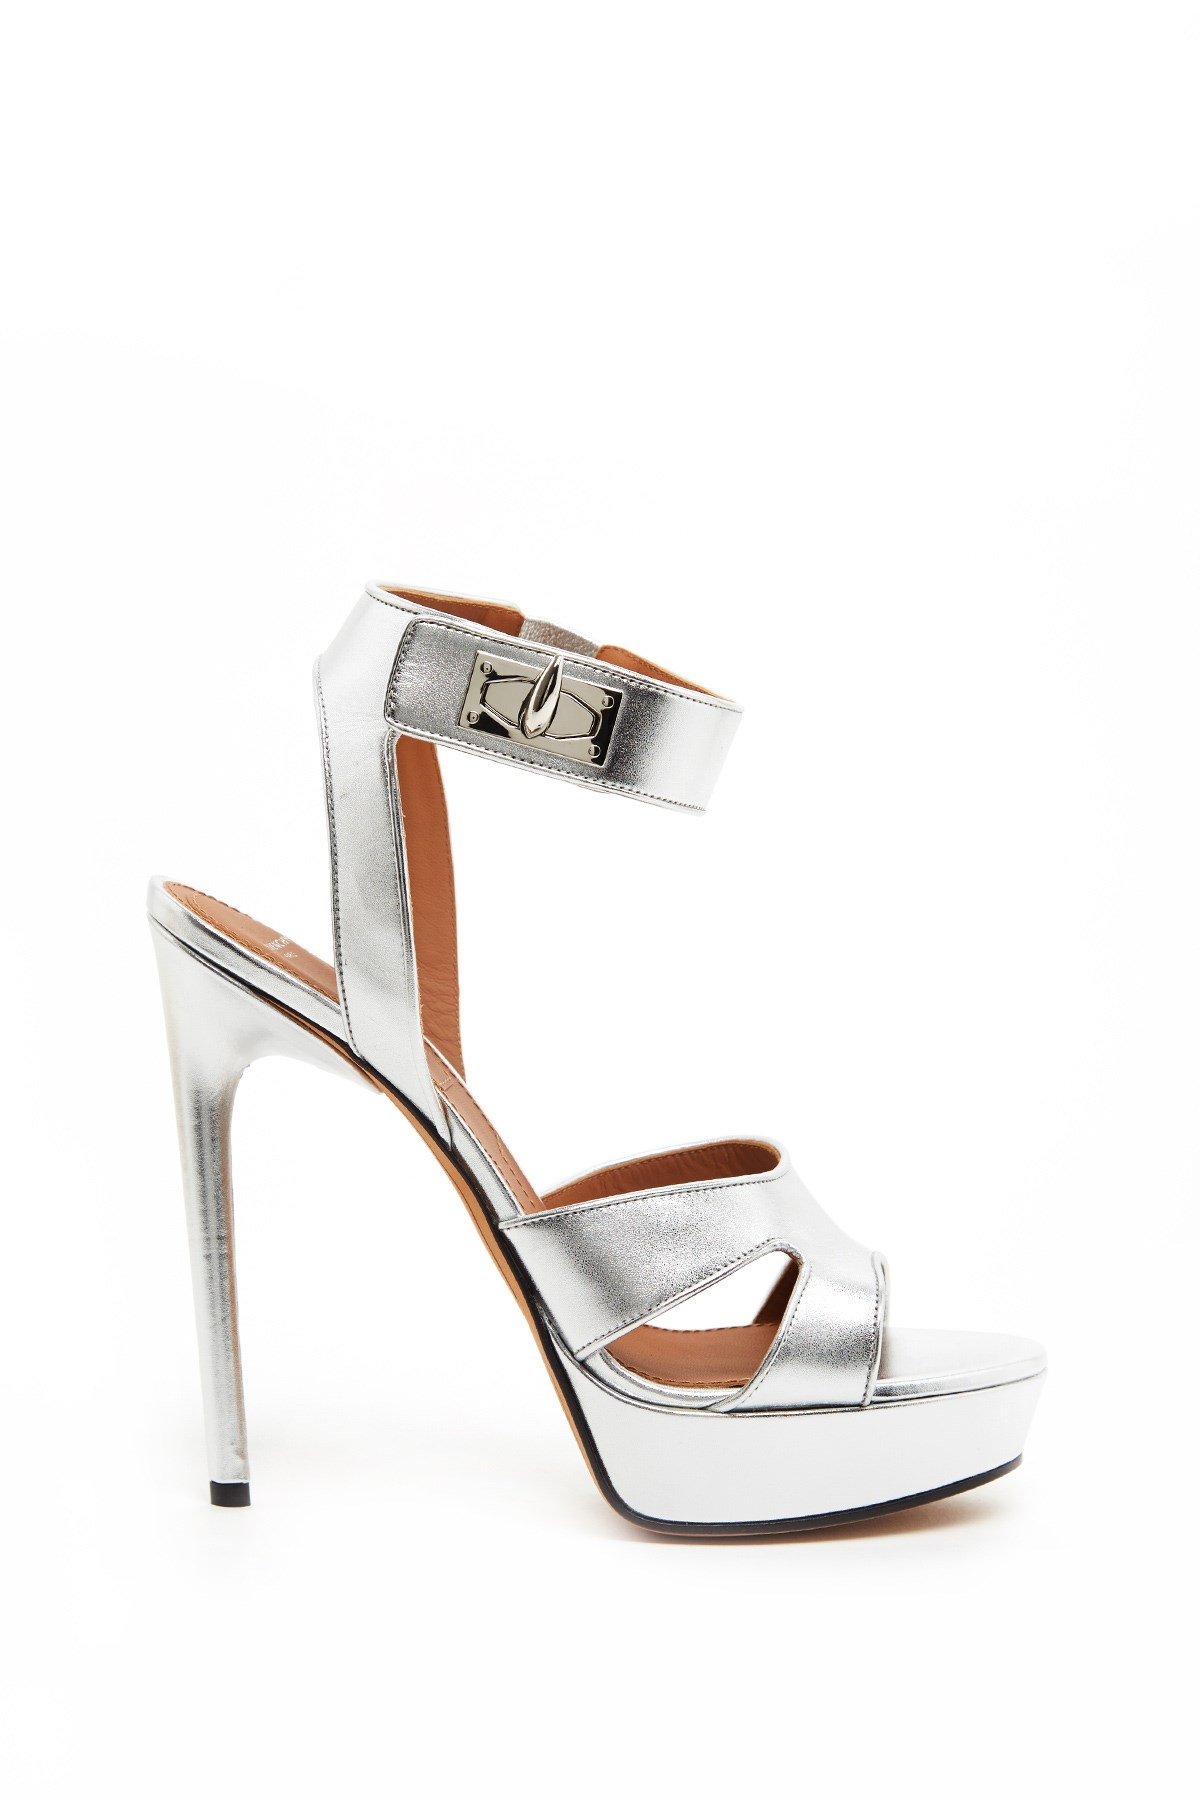 9a1364f58571 givenchy  shark lock  sandals available on julian-fashion.com - 45688